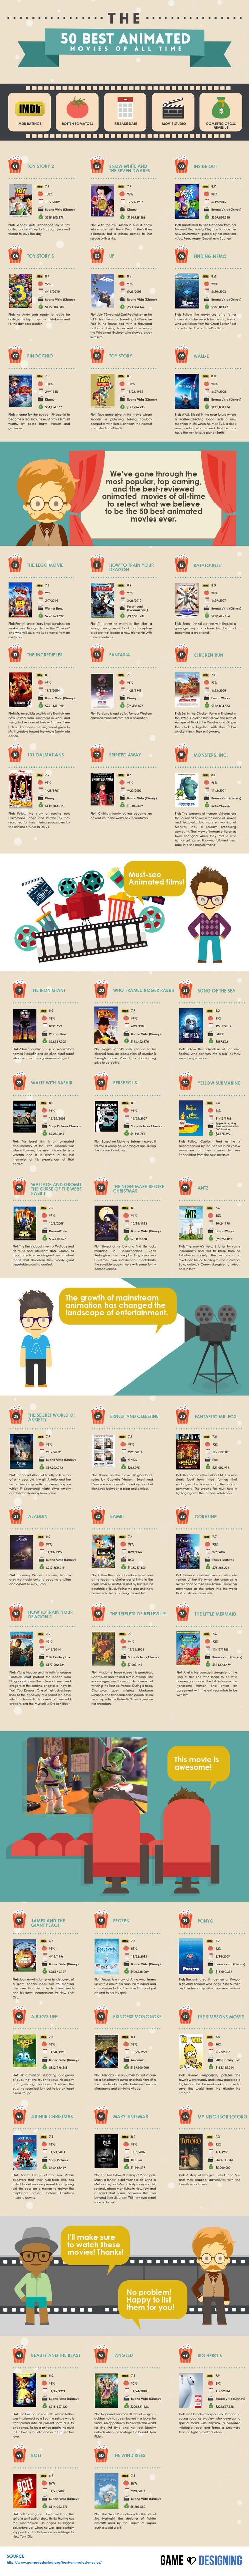 The Top Animated Movies of All Time #infographic #Movies